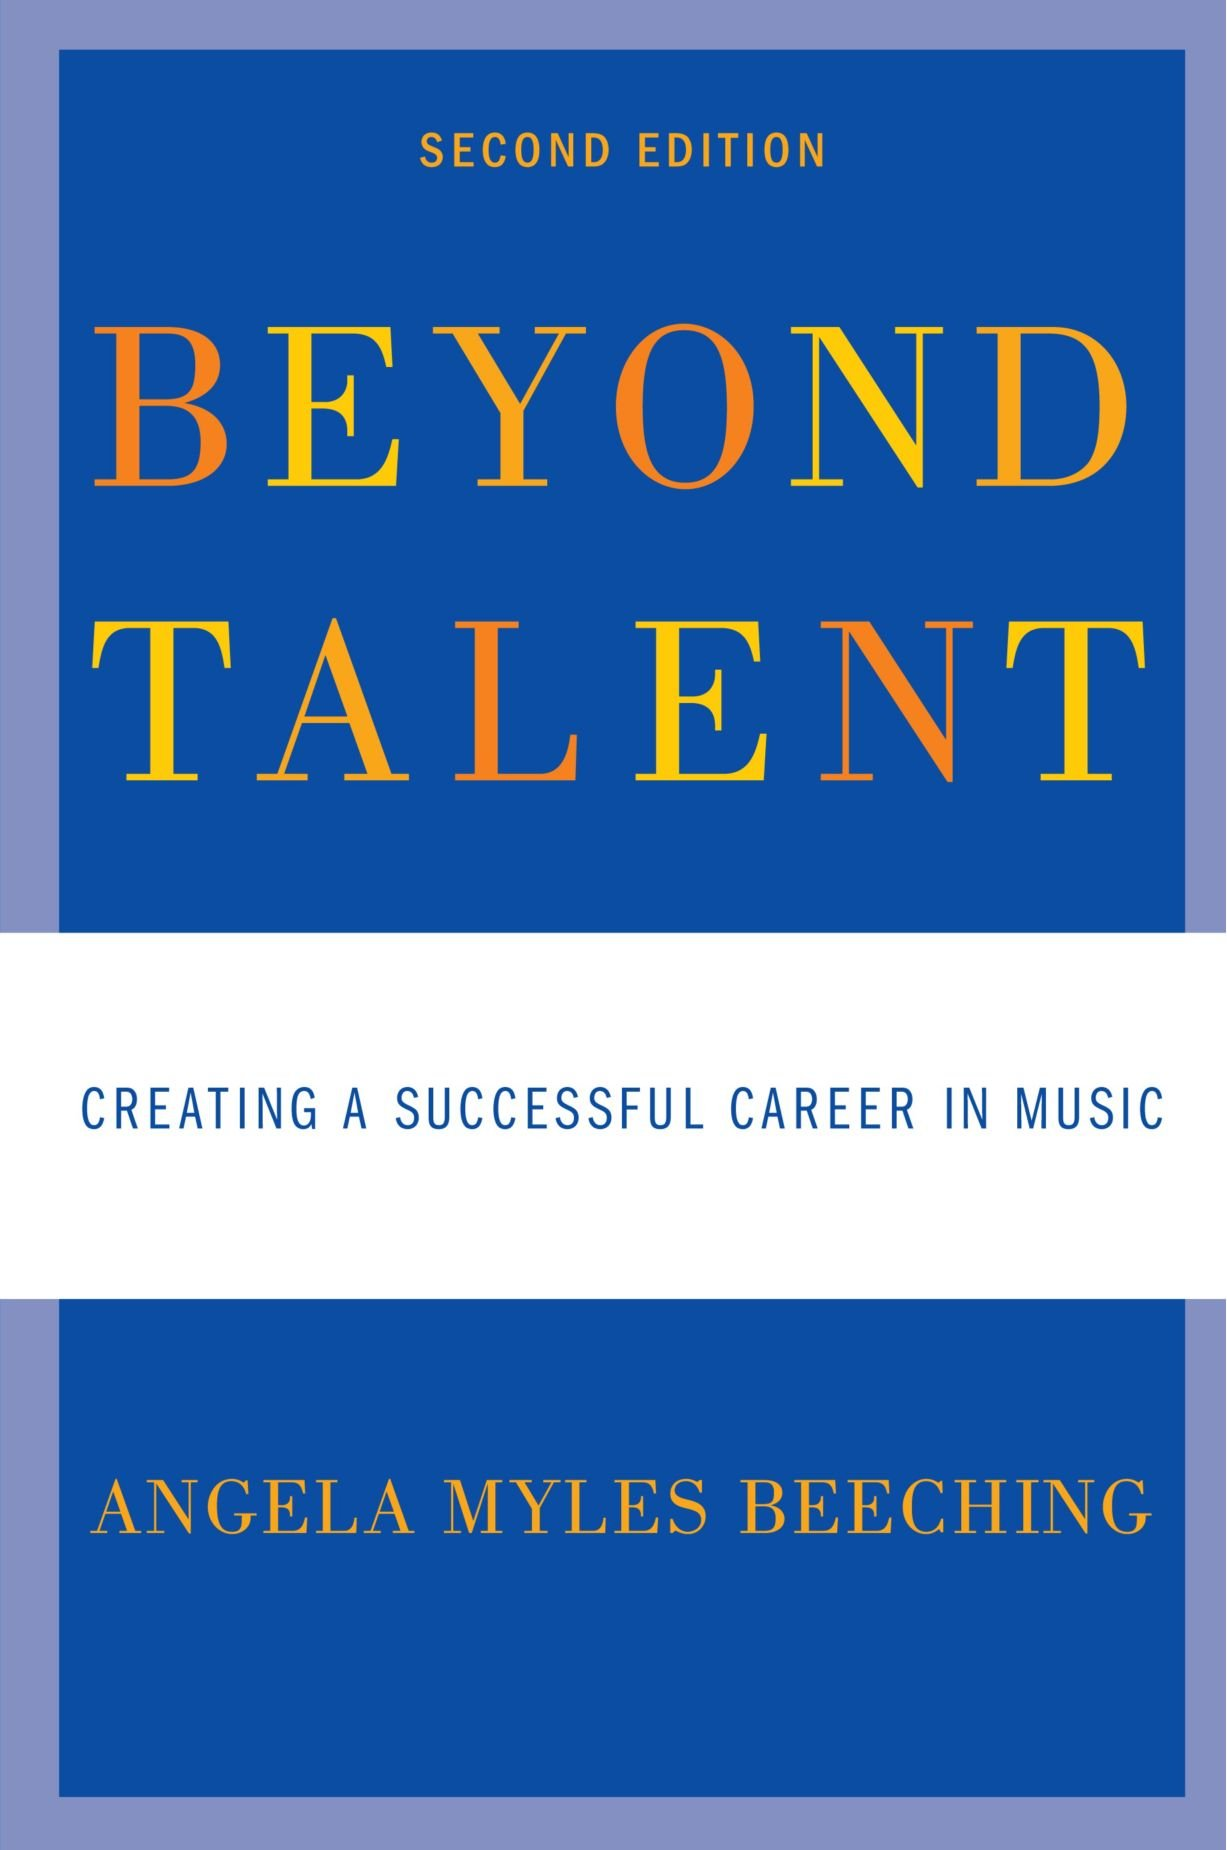 beyond talent creating a successful career in music by angela myles beeching music. Black Bedroom Furniture Sets. Home Design Ideas